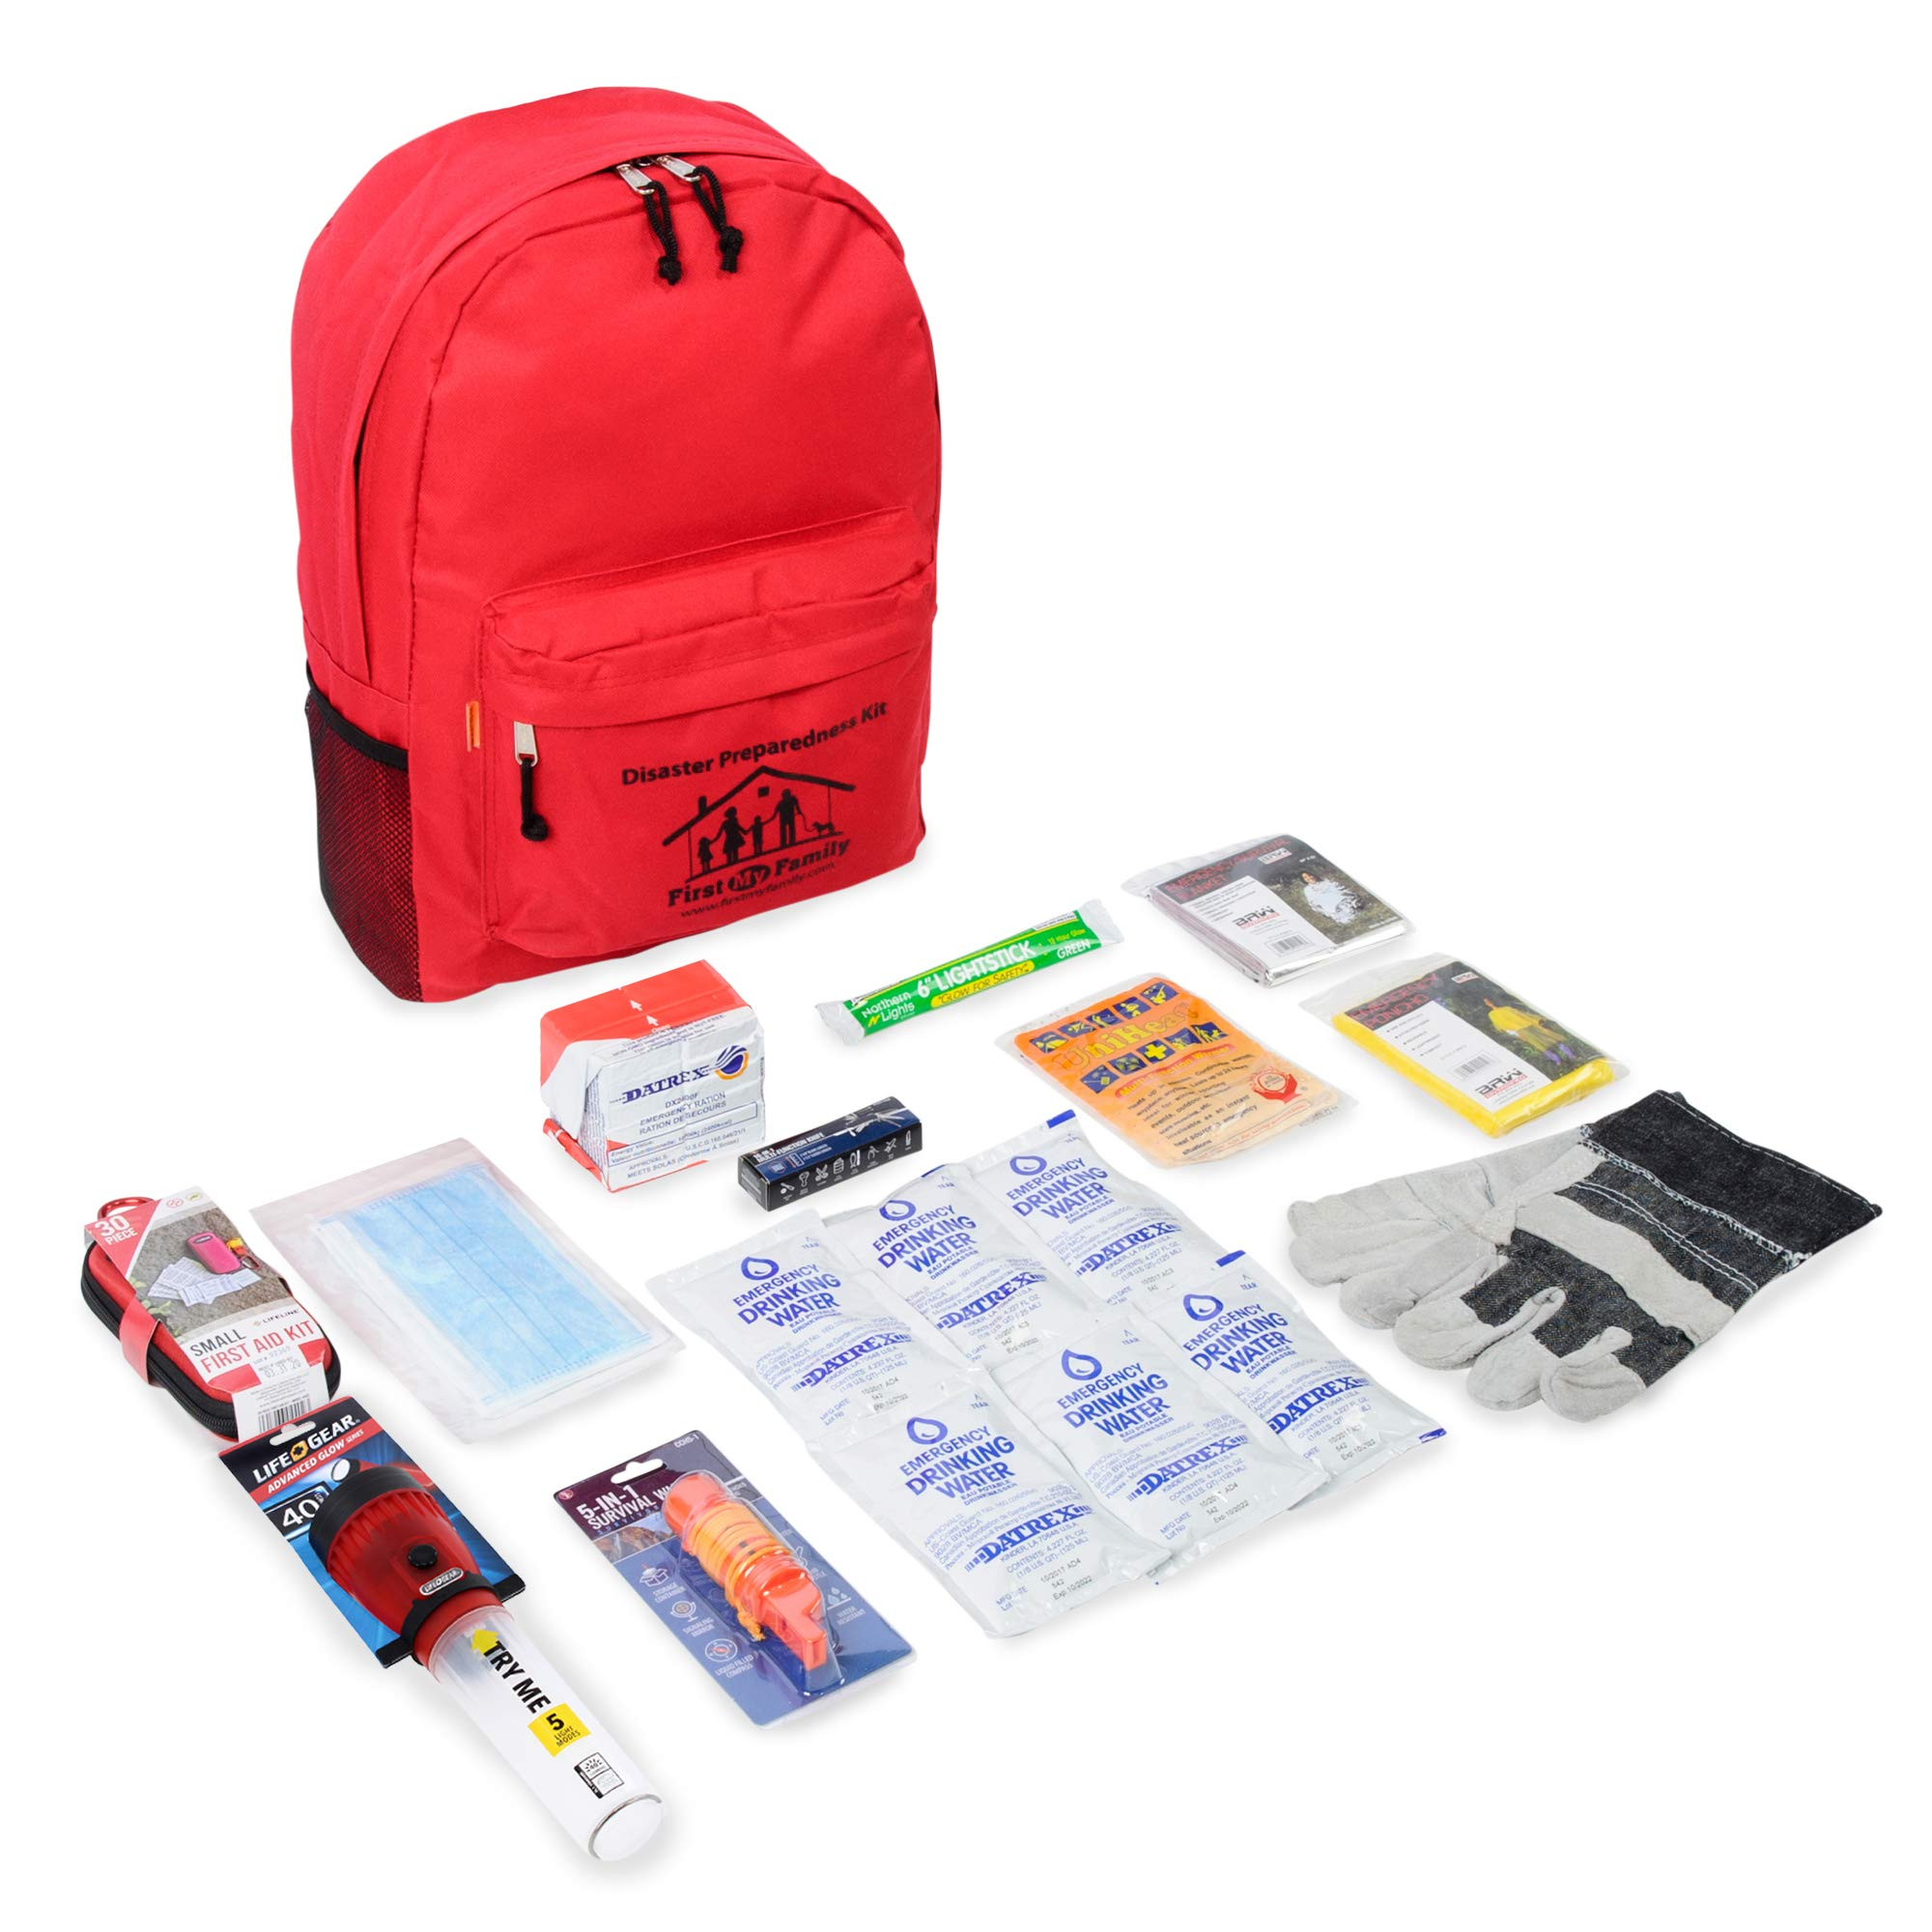 First My Family 1PKIT All-in-One Single Person Premium Disaster Preparedness Survival Kit with 72 Hours of Survival and First-Aid Supplies by FIRST MY FAMILY A DISASTER PREPAREDNESSCOMPANY